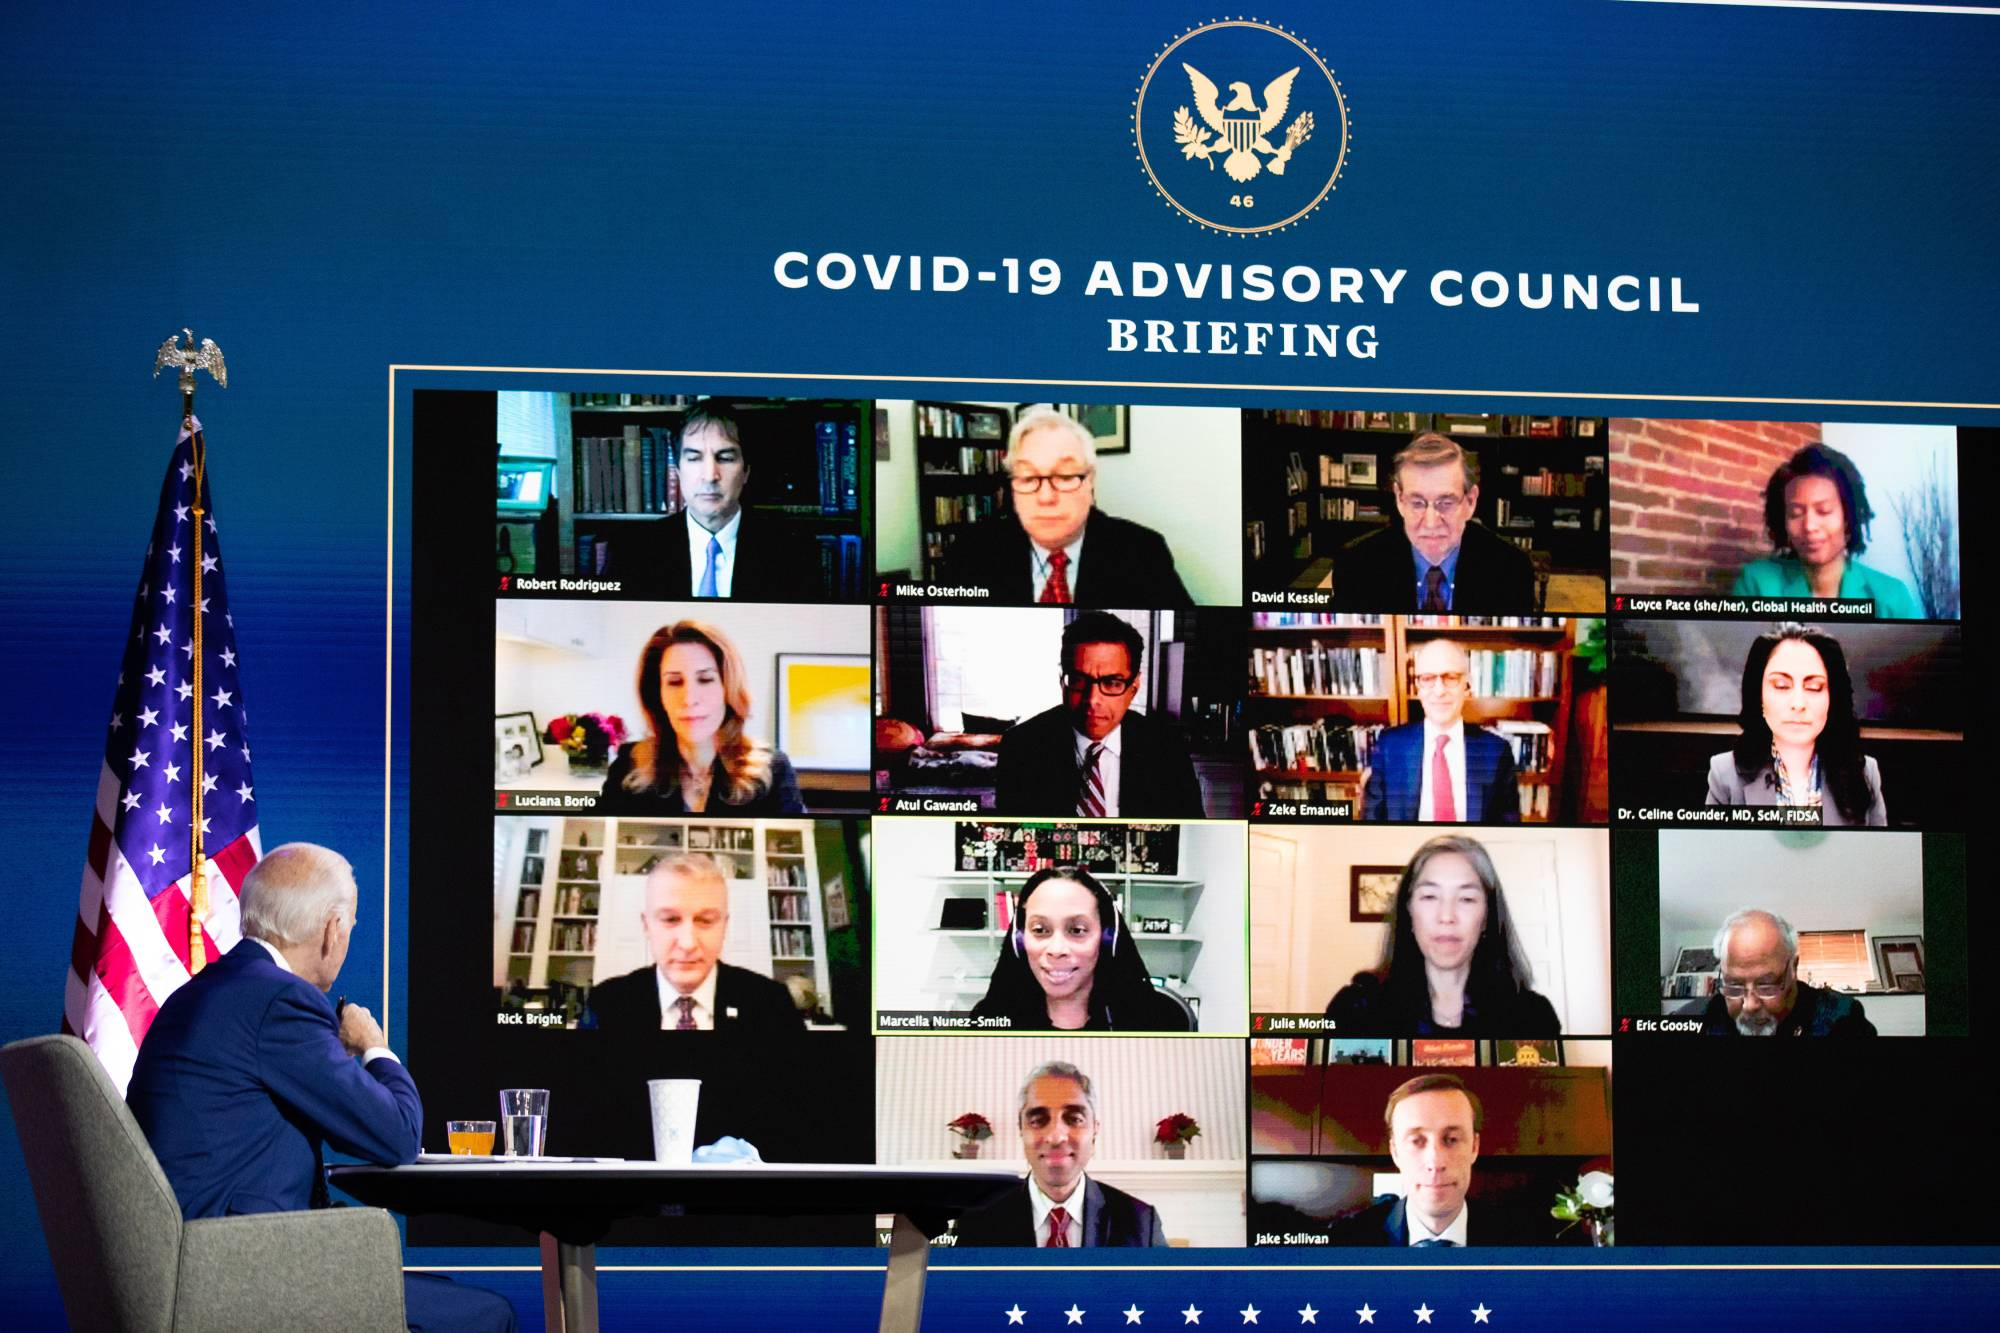 President-elect Joe Biden meets with his COVID-19 Advisor Council via teleconference at The Queen theater in Wilmington, Delaware, on Monday. | AMR ALFIKY / THE NEW YORK TIMES